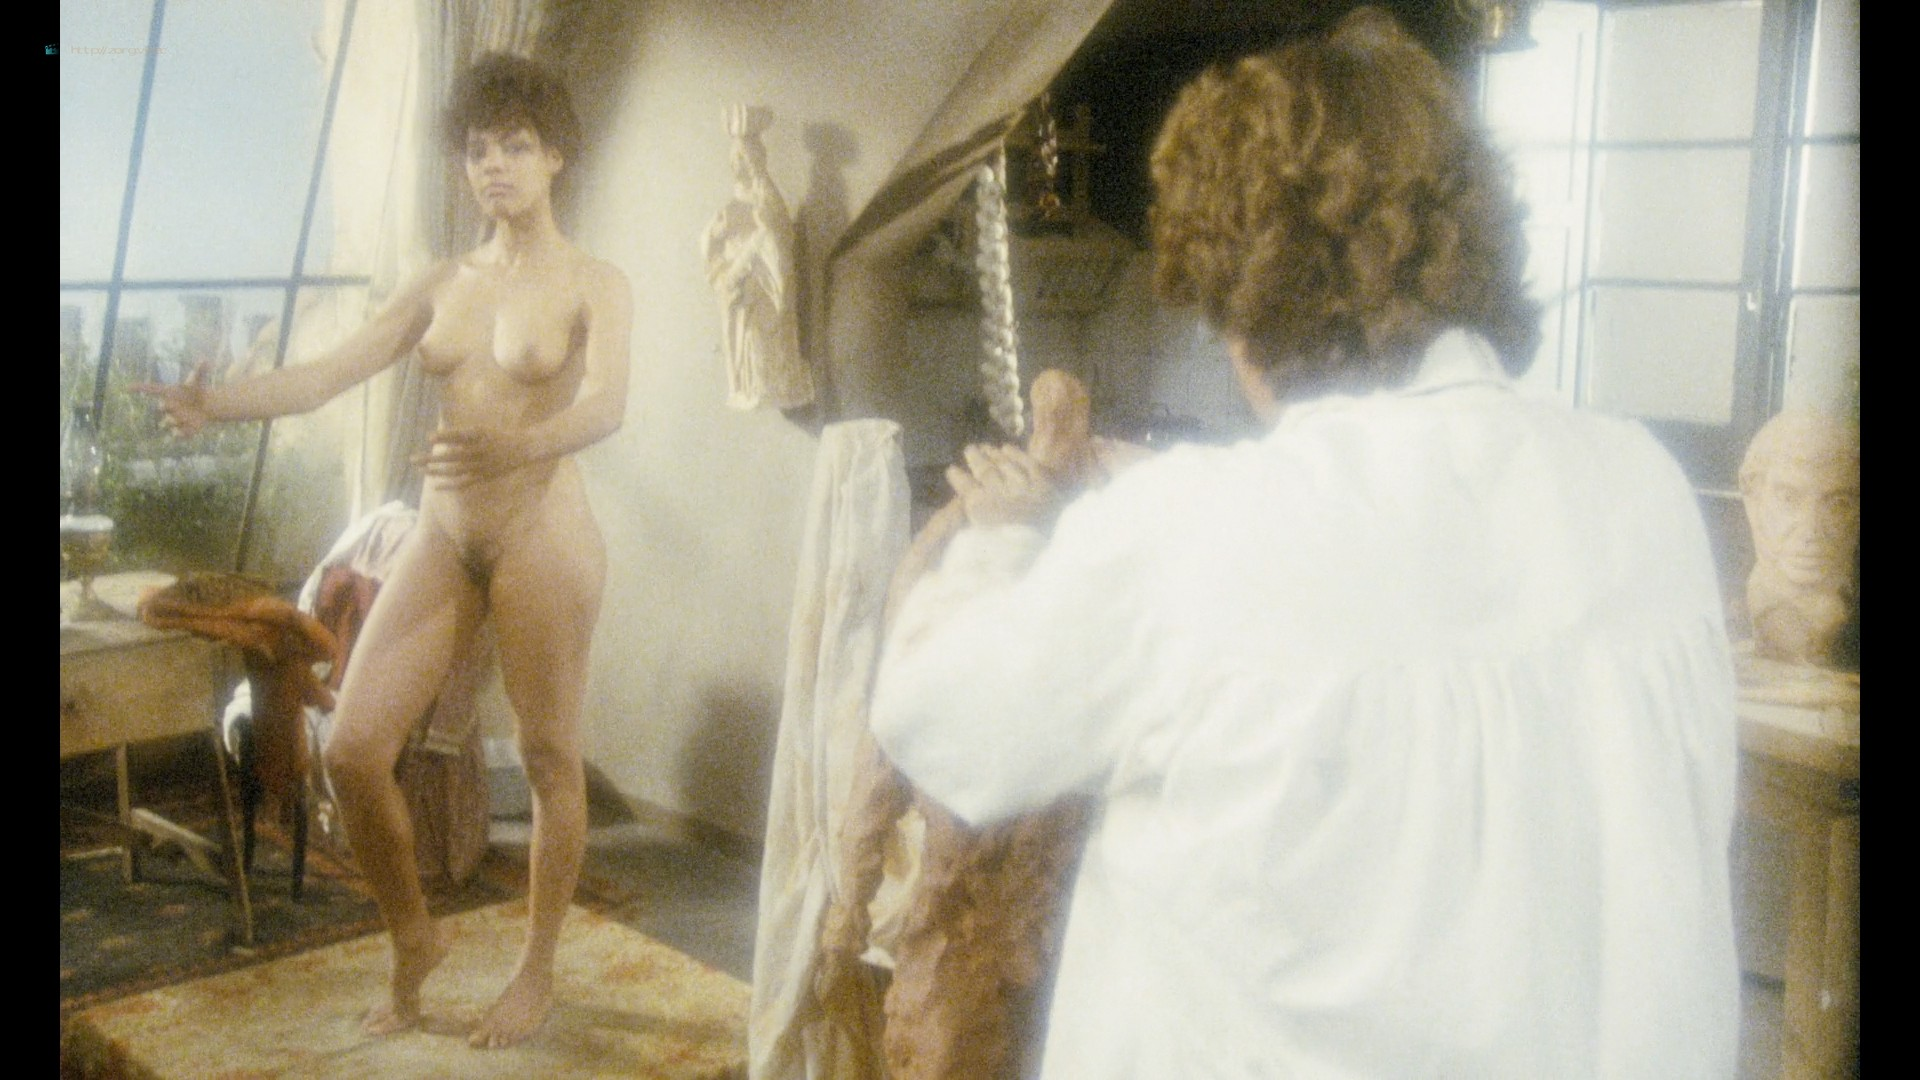 Josephine Jacqueline Jones nude full frontal Florence Guérin and others nude sex too - Black Venus (1983) HD 1080p Web (14)